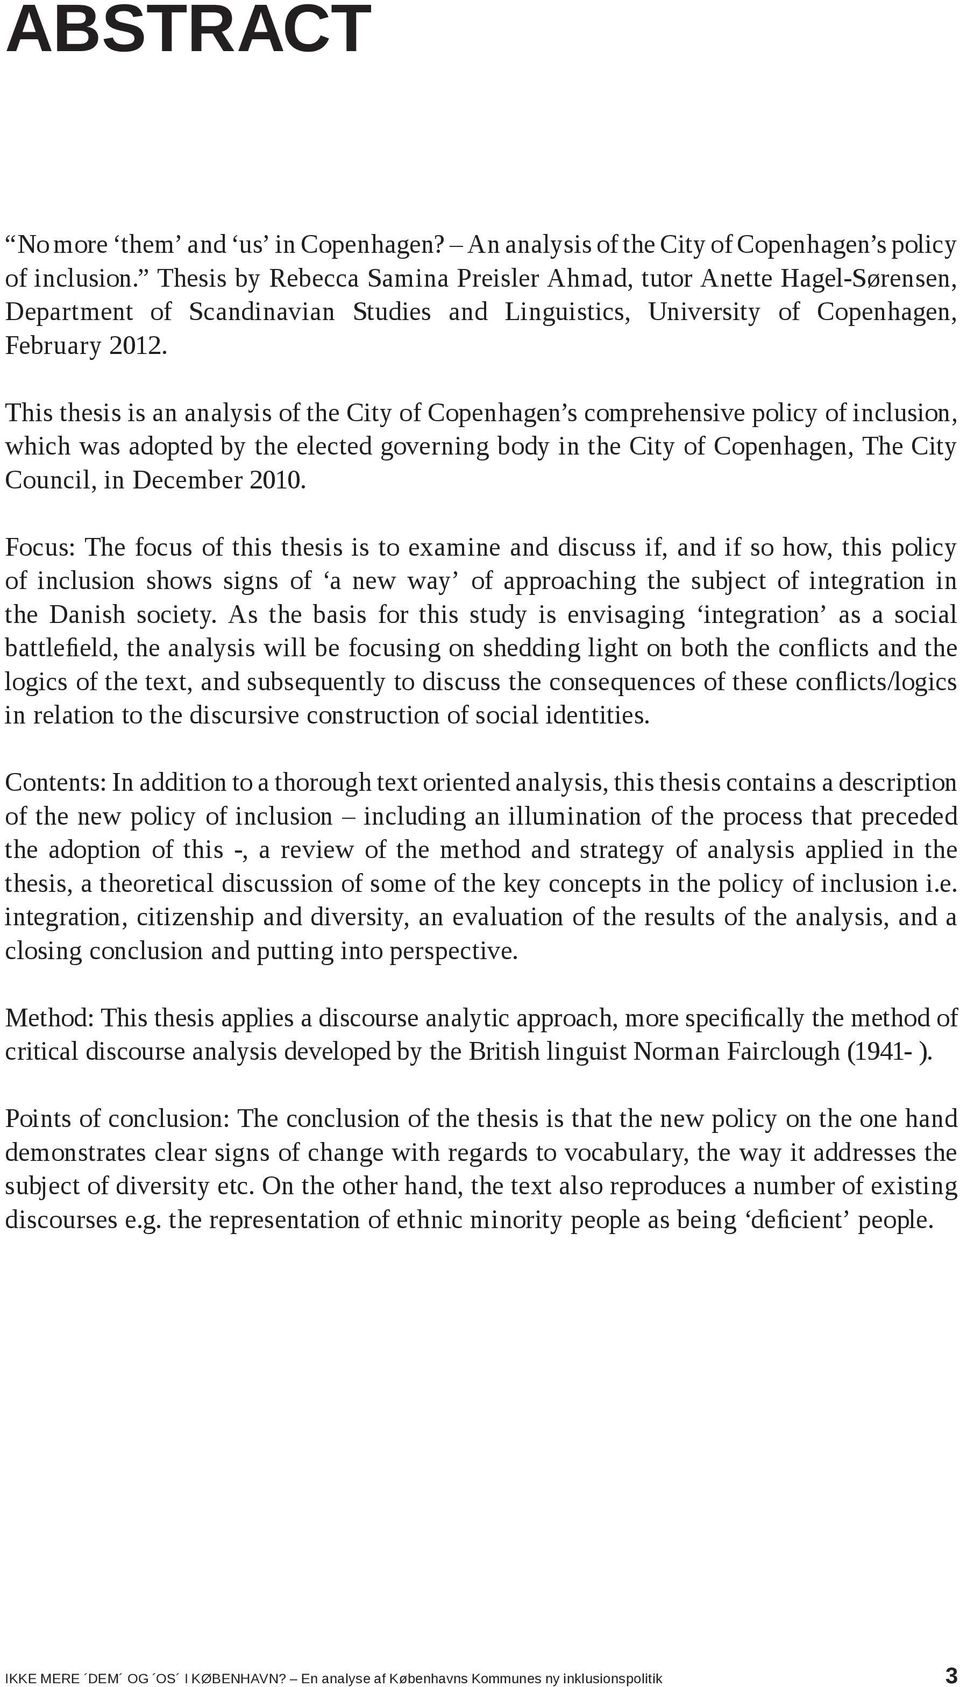 This thesis is an analysis of the City of Copenhagen s comprehensive policy of inclusion, which was adopted by the elected governing body in the City of Copenhagen, The City Council, in December 2010.